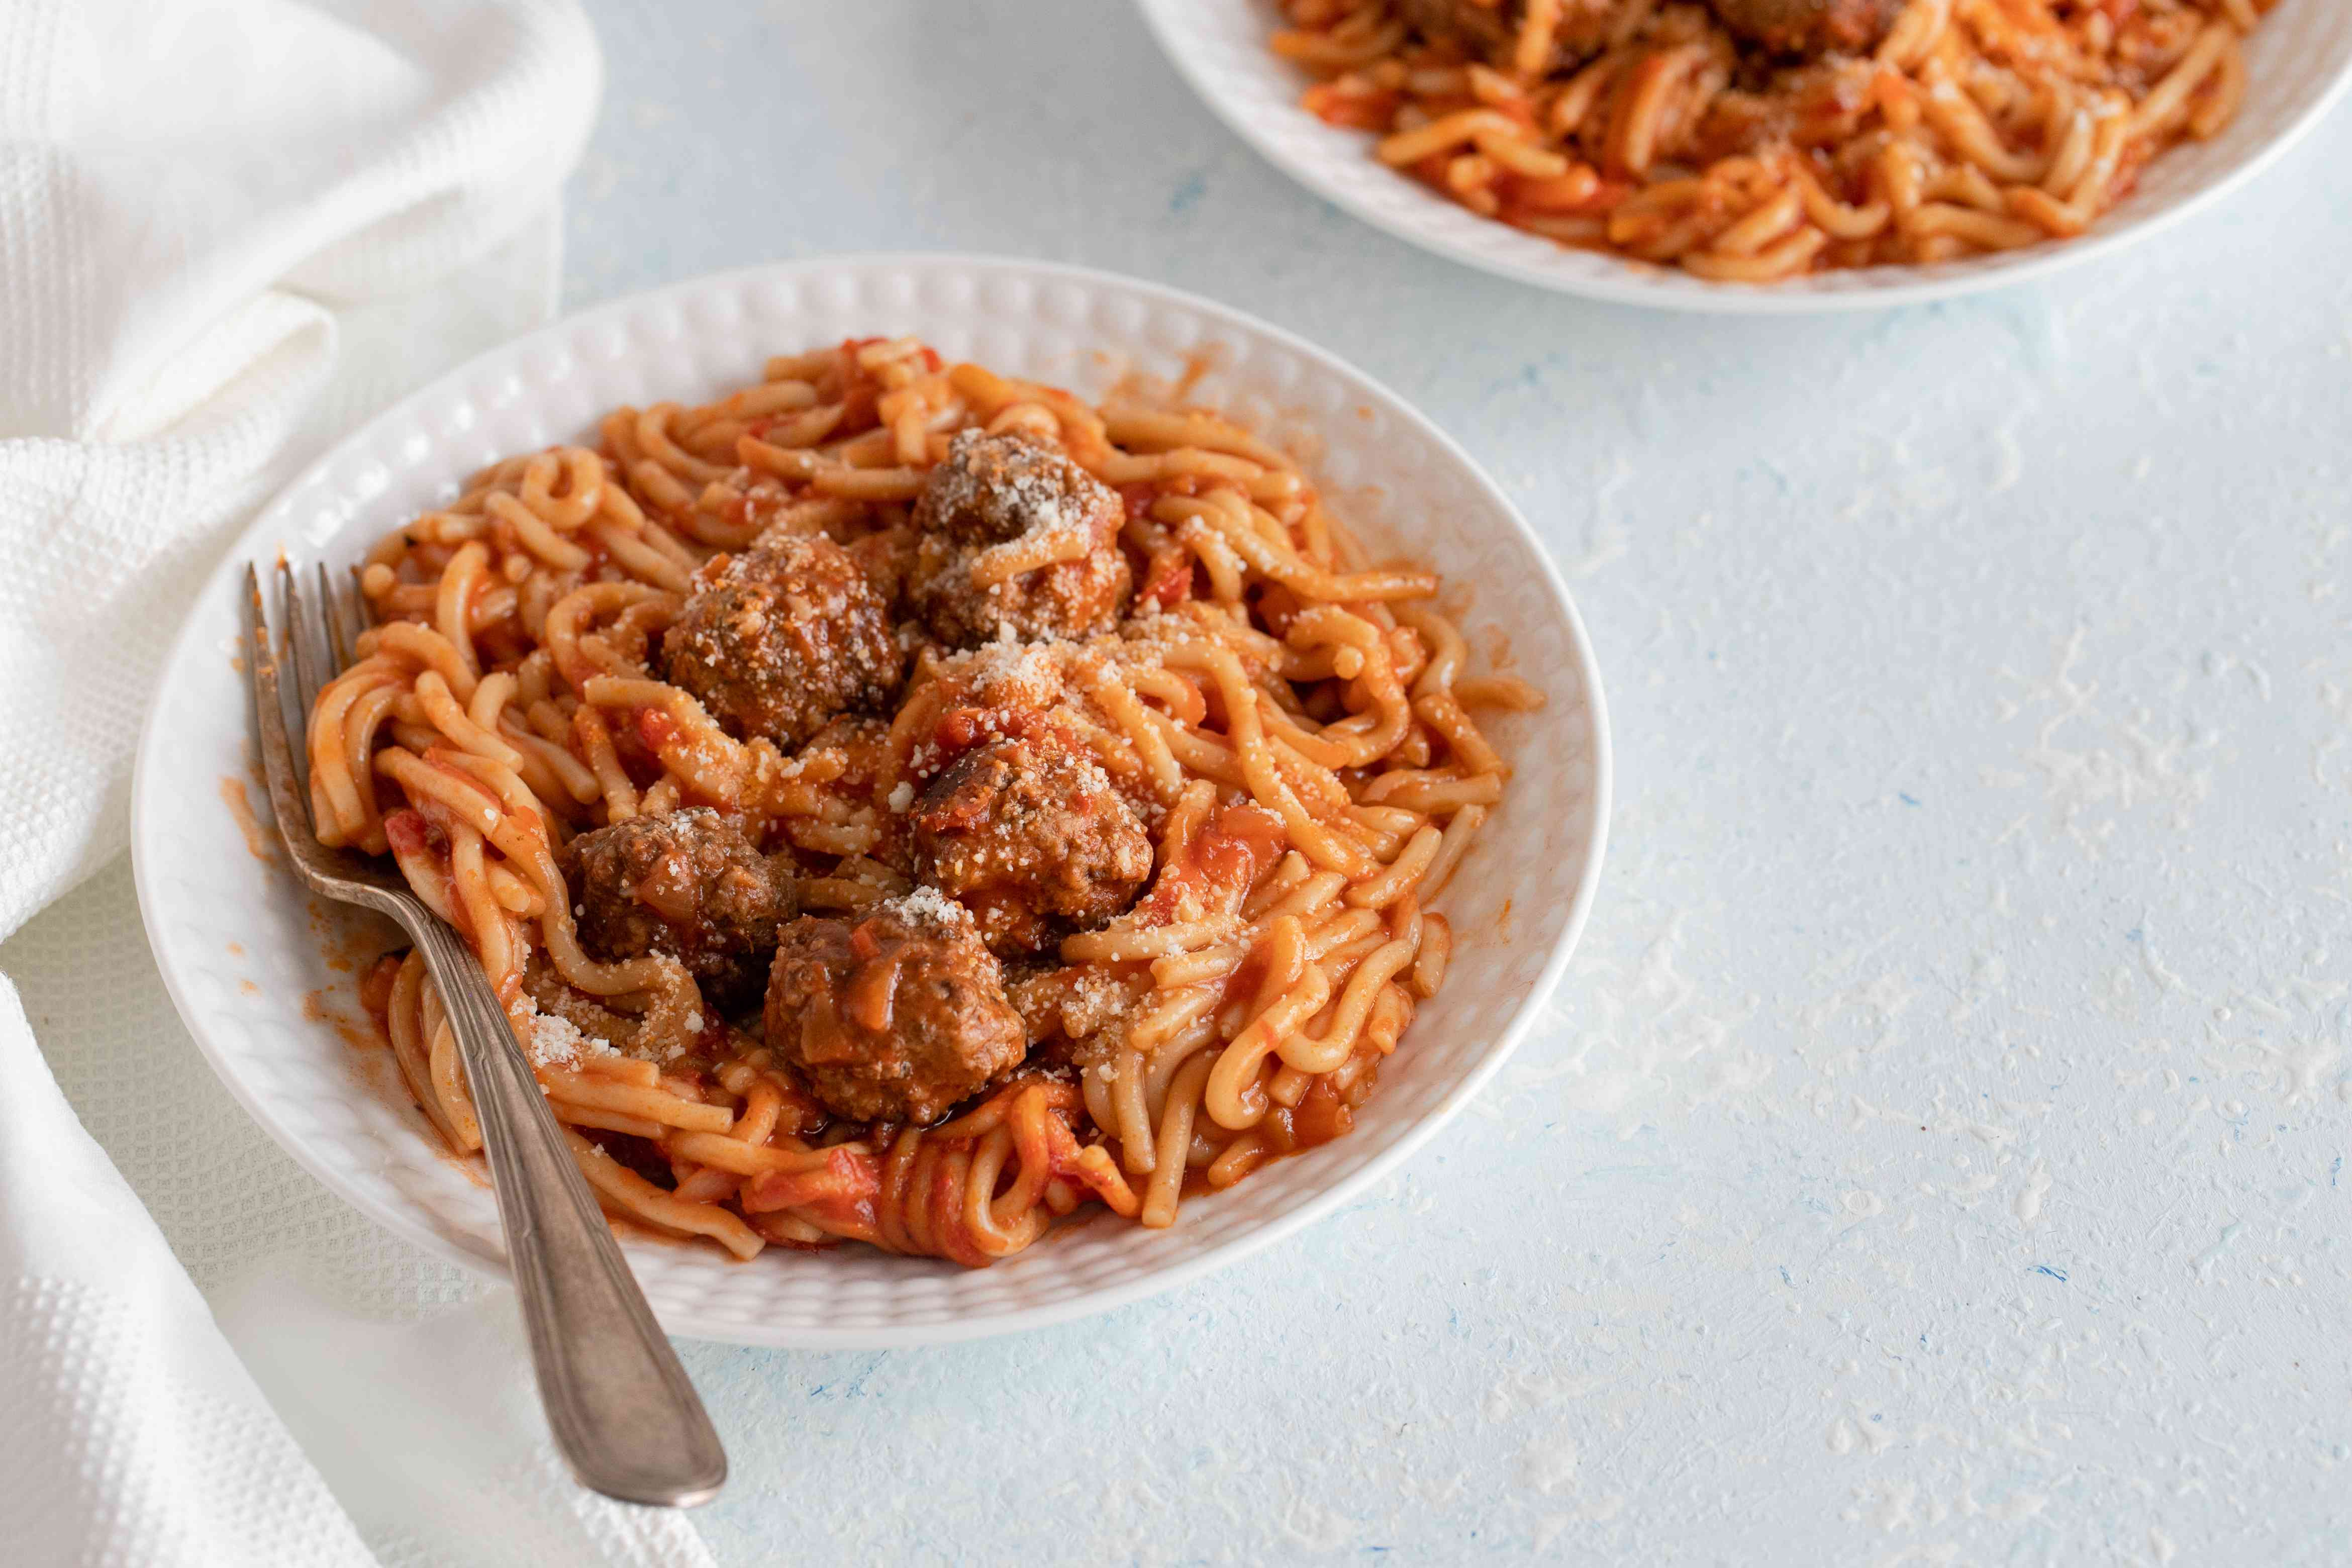 Spaghetti and meatballs topped with cheese